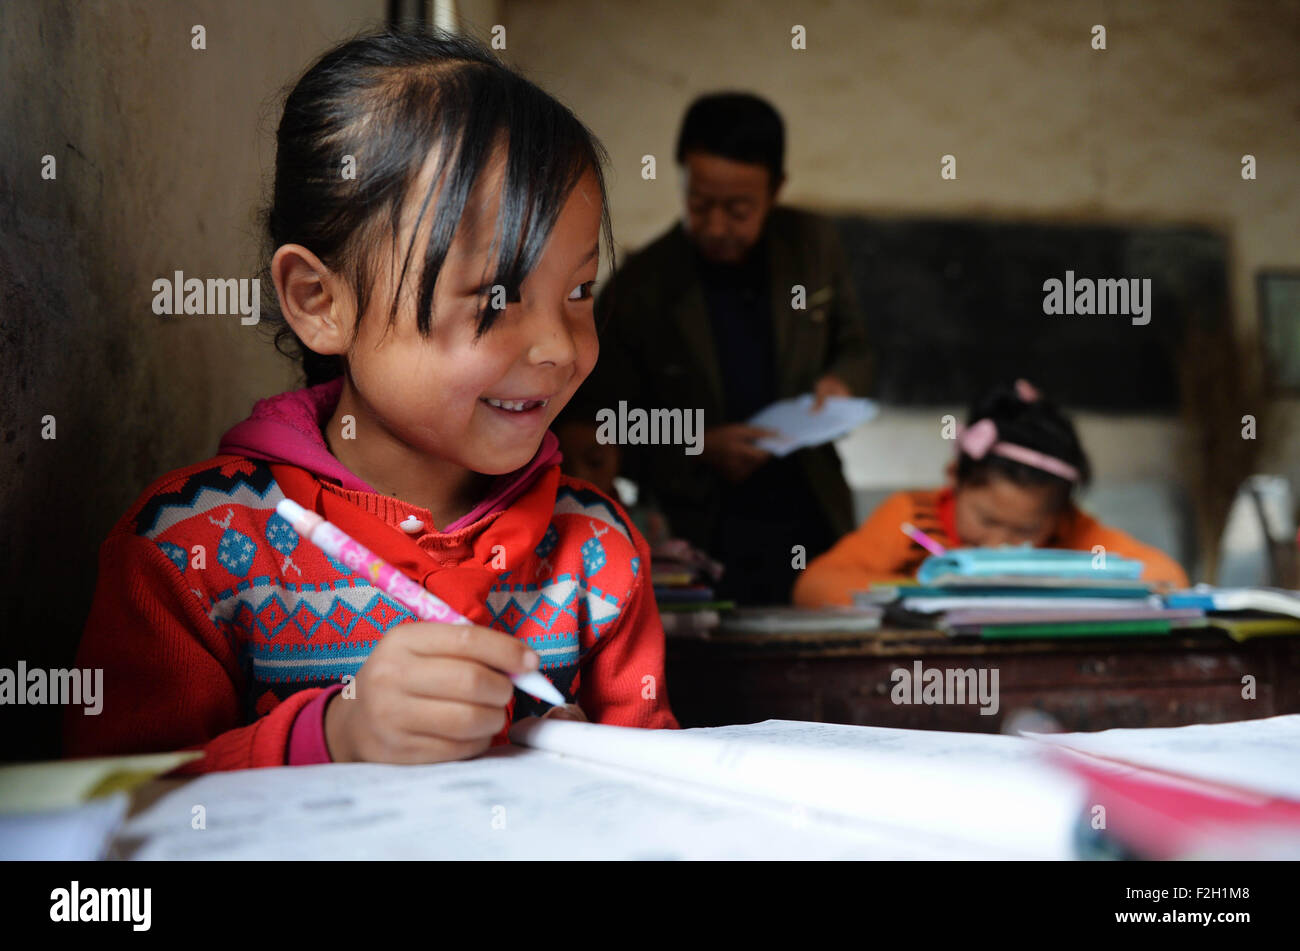 (150919) -- QIN'AN, Sept. 19, 2015 (Xinhua) -- Students learn in their mathematics class at Shanwang Primary - Stock Image